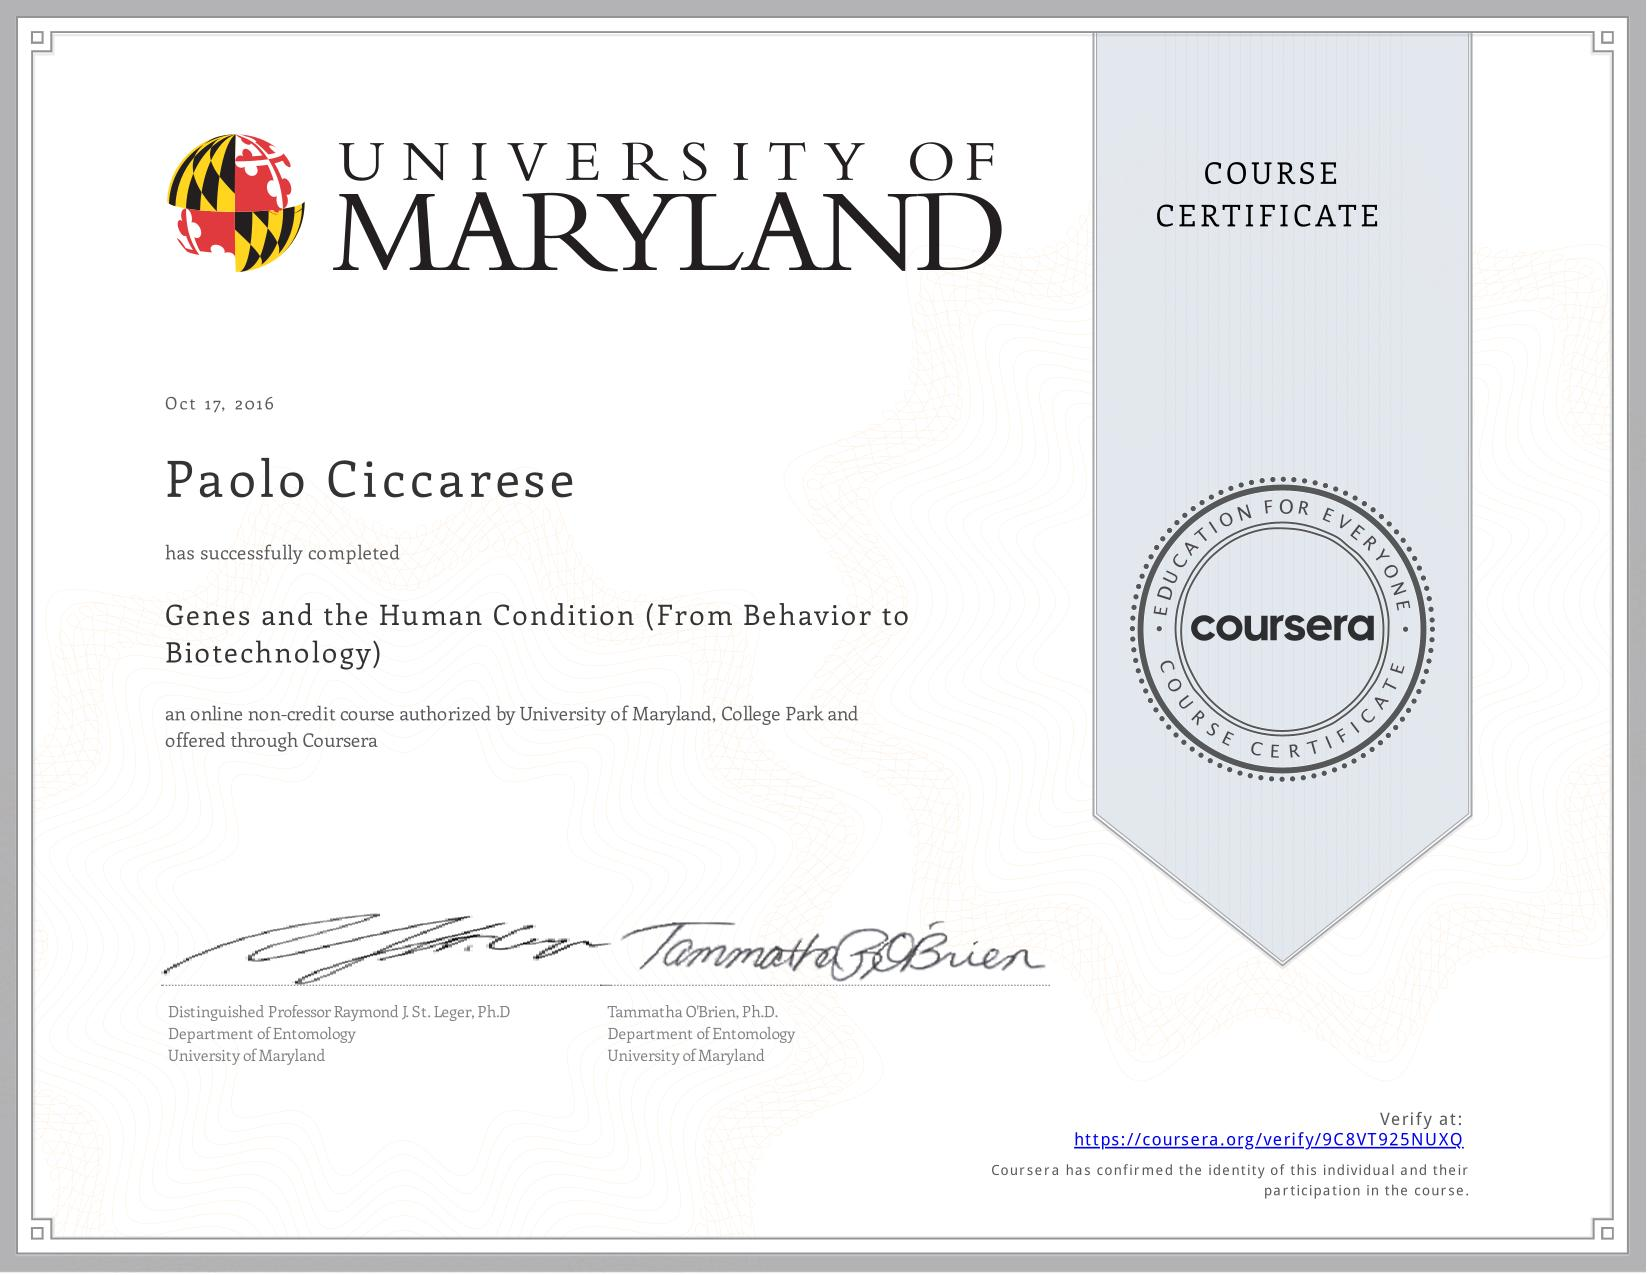 View certificate for Paolo Ciccarese, Genes and the Human Condition (From Behavior to Biotechnology), an online non-credit course authorized by University of Maryland, College Park and offered through Coursera